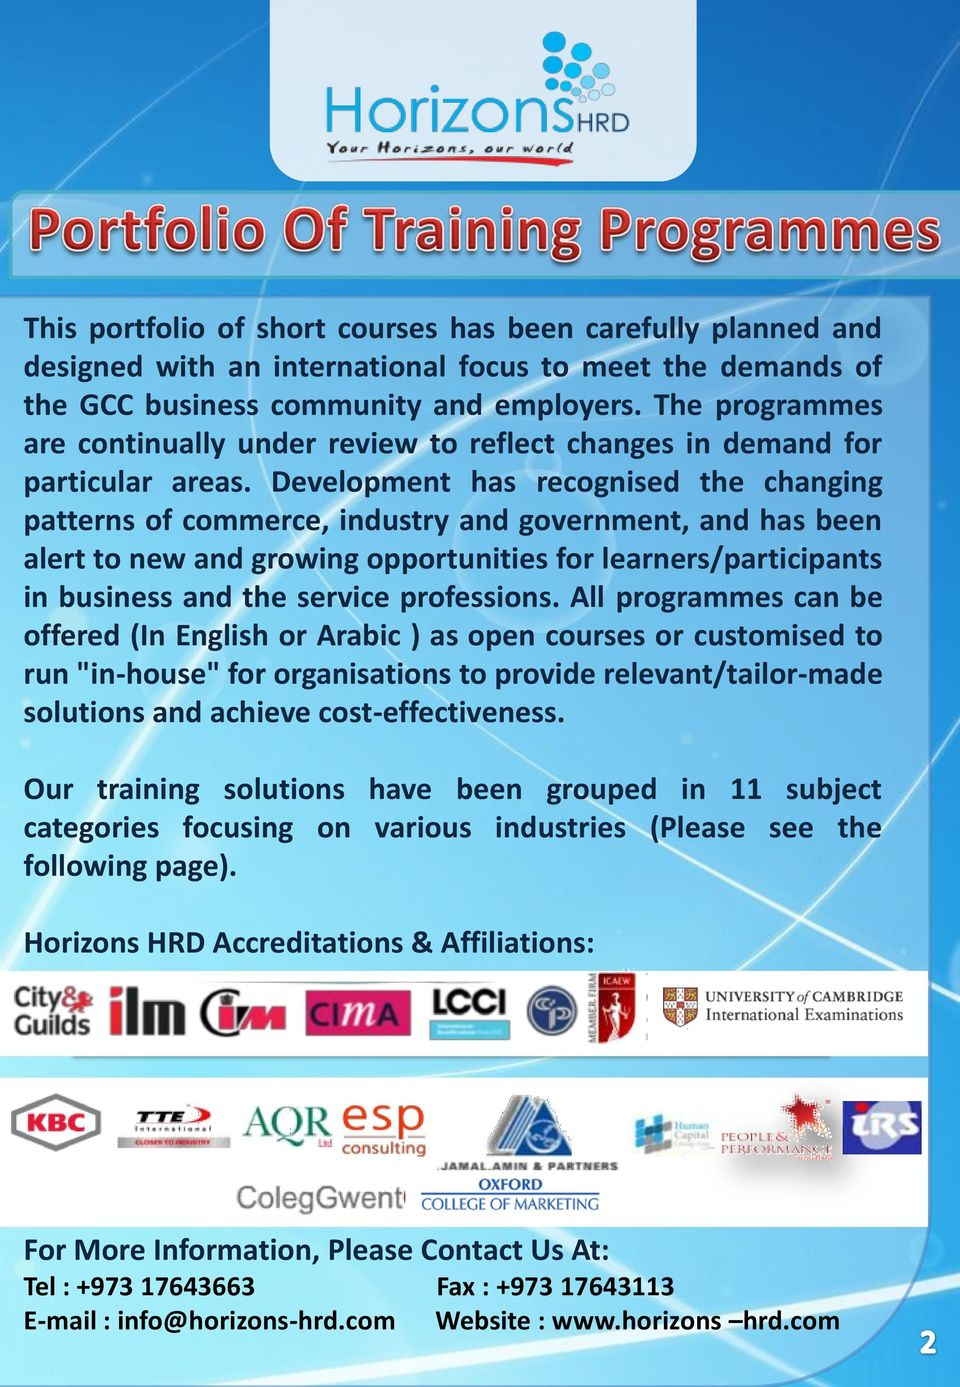 Development has recognised the changing patterns of commerce, industry and government, and has been alert to new and growing opportunities for learners/participants in business and the service